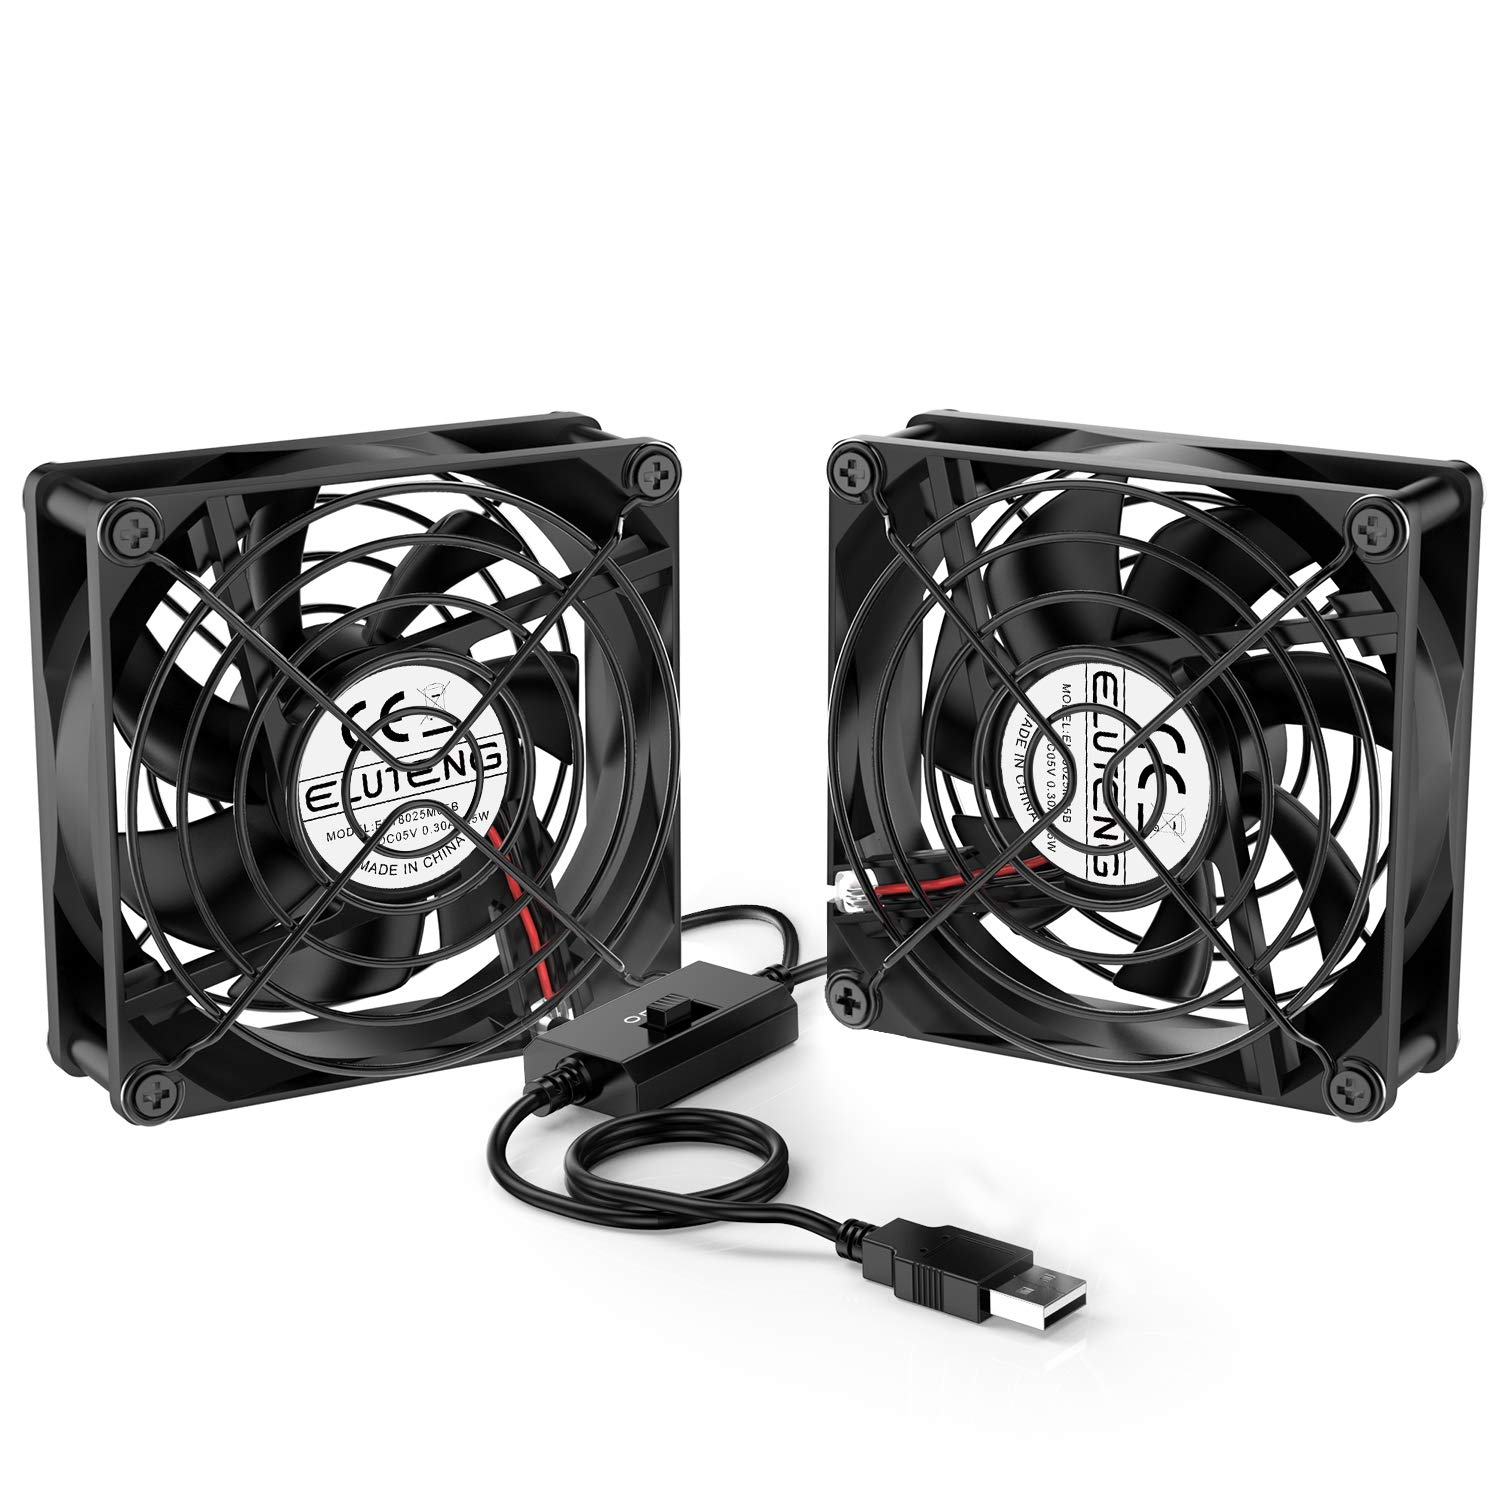 ELUTENG Dual USB Fan 80mm, 3 Speed Adjustable USB Ventilator with 2750RPM 5V Fan for Computer/Laptop/Router/TV Cabinet/DVR/Xbox/Game Console Cooling